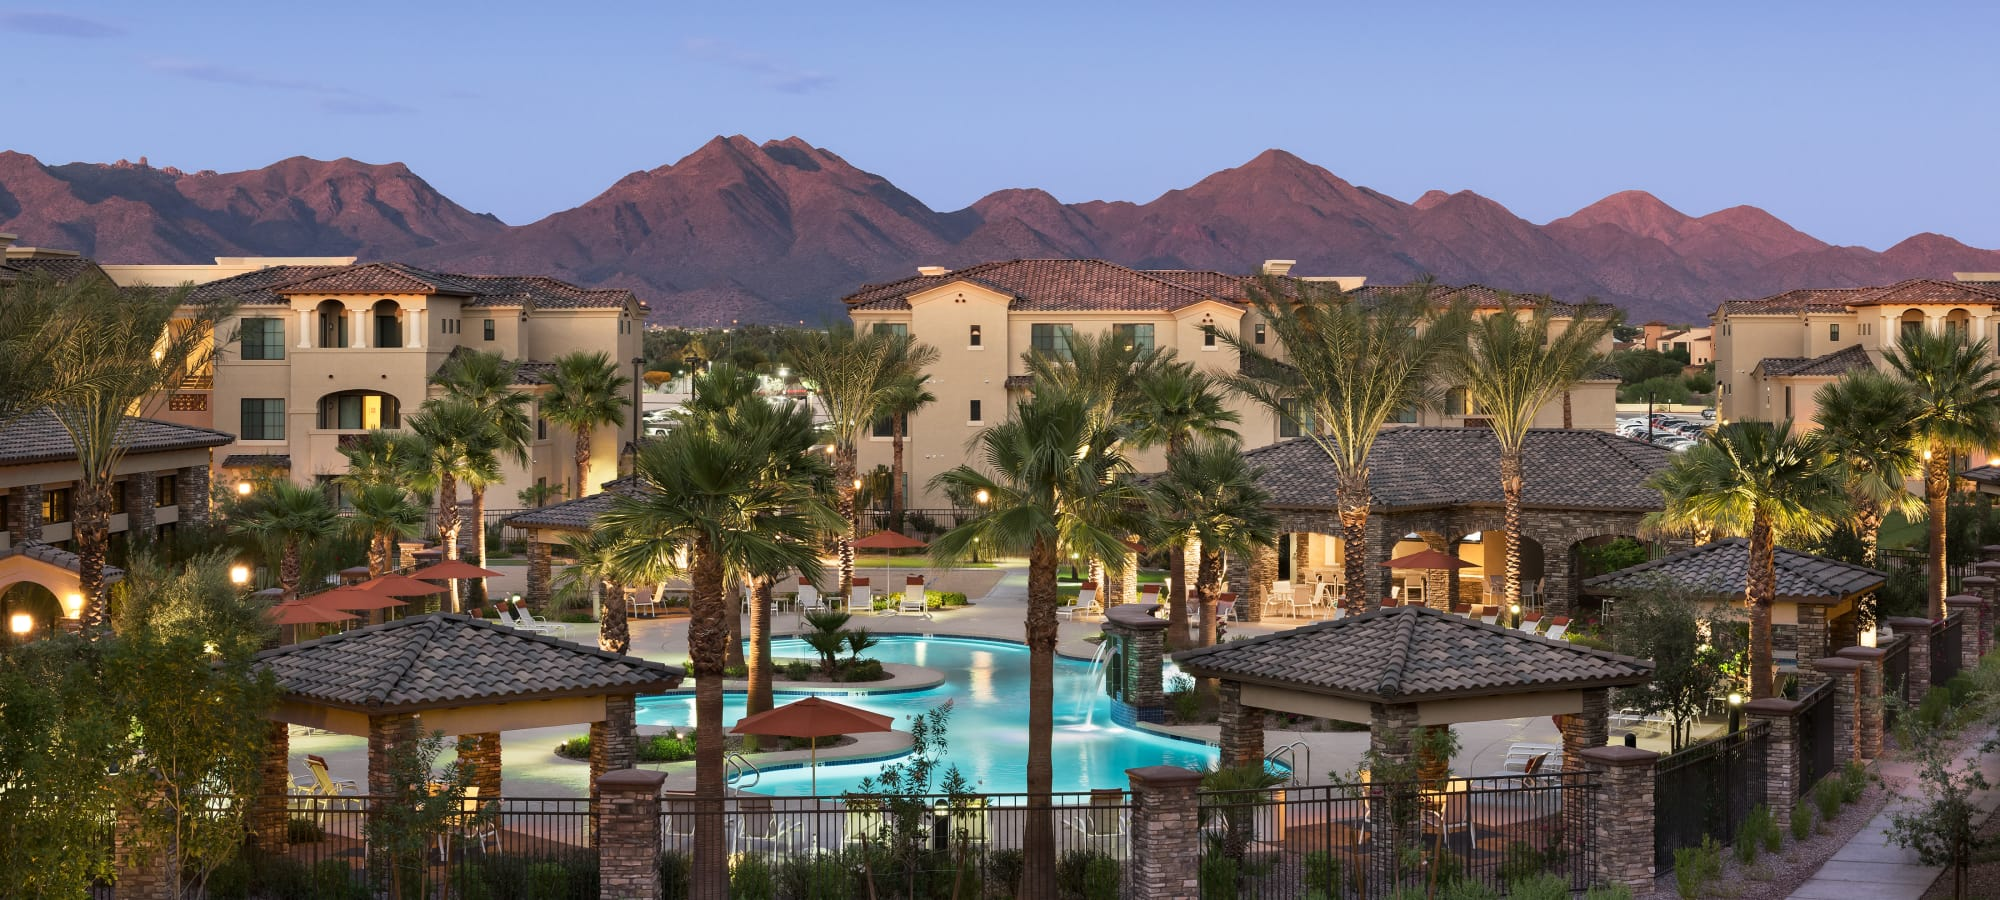 View of our beautiful community with mountains in the background at San Milan in Phoenix, Arizona